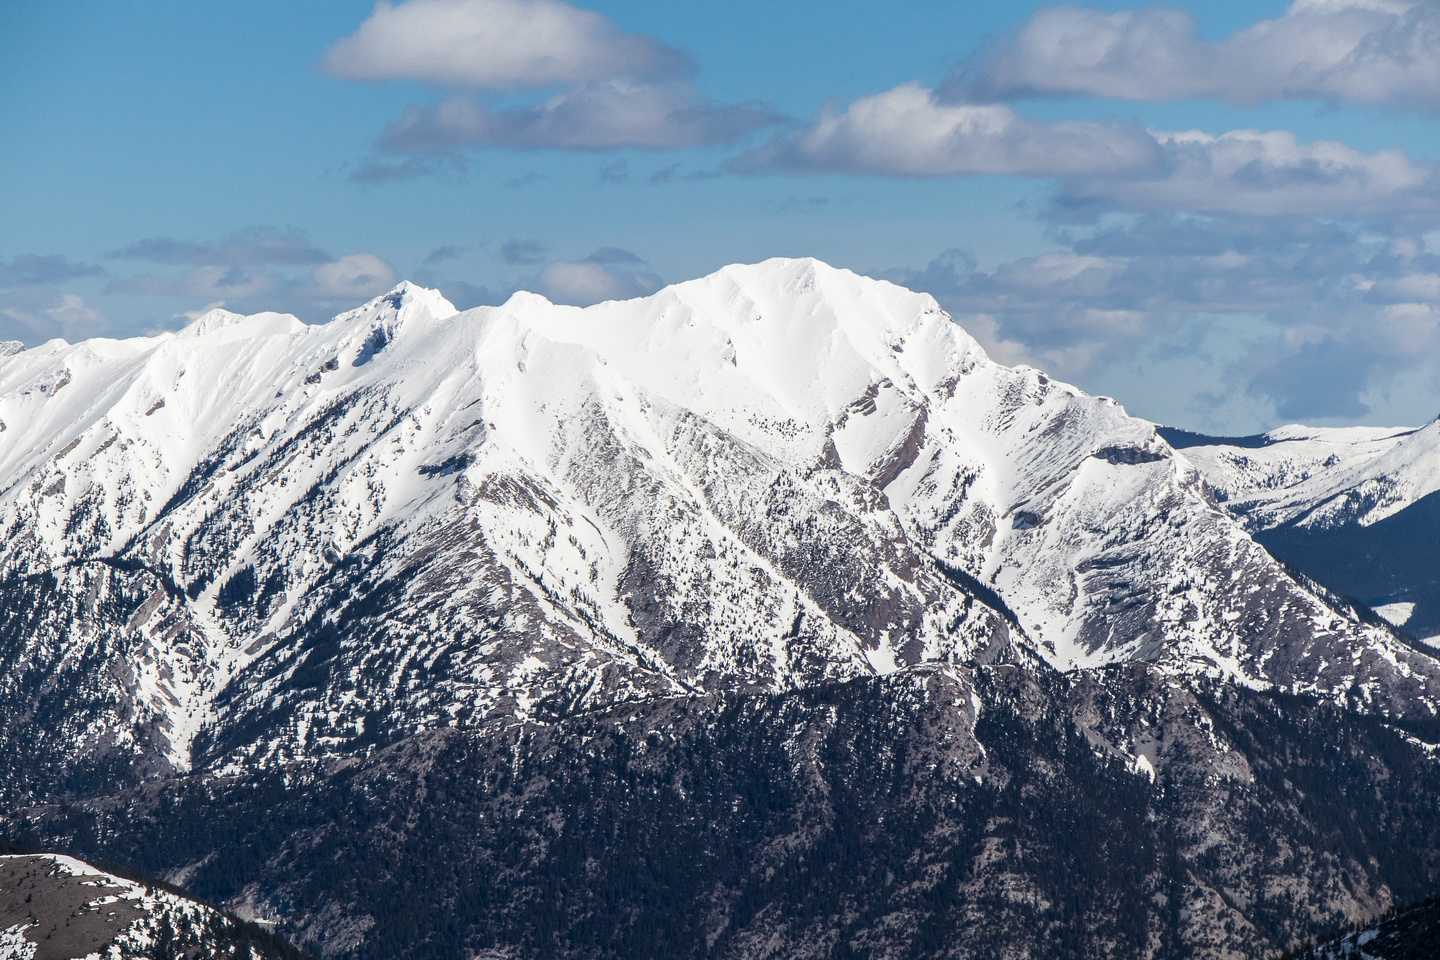 Phillipps Peak and Mount Tecumseh.